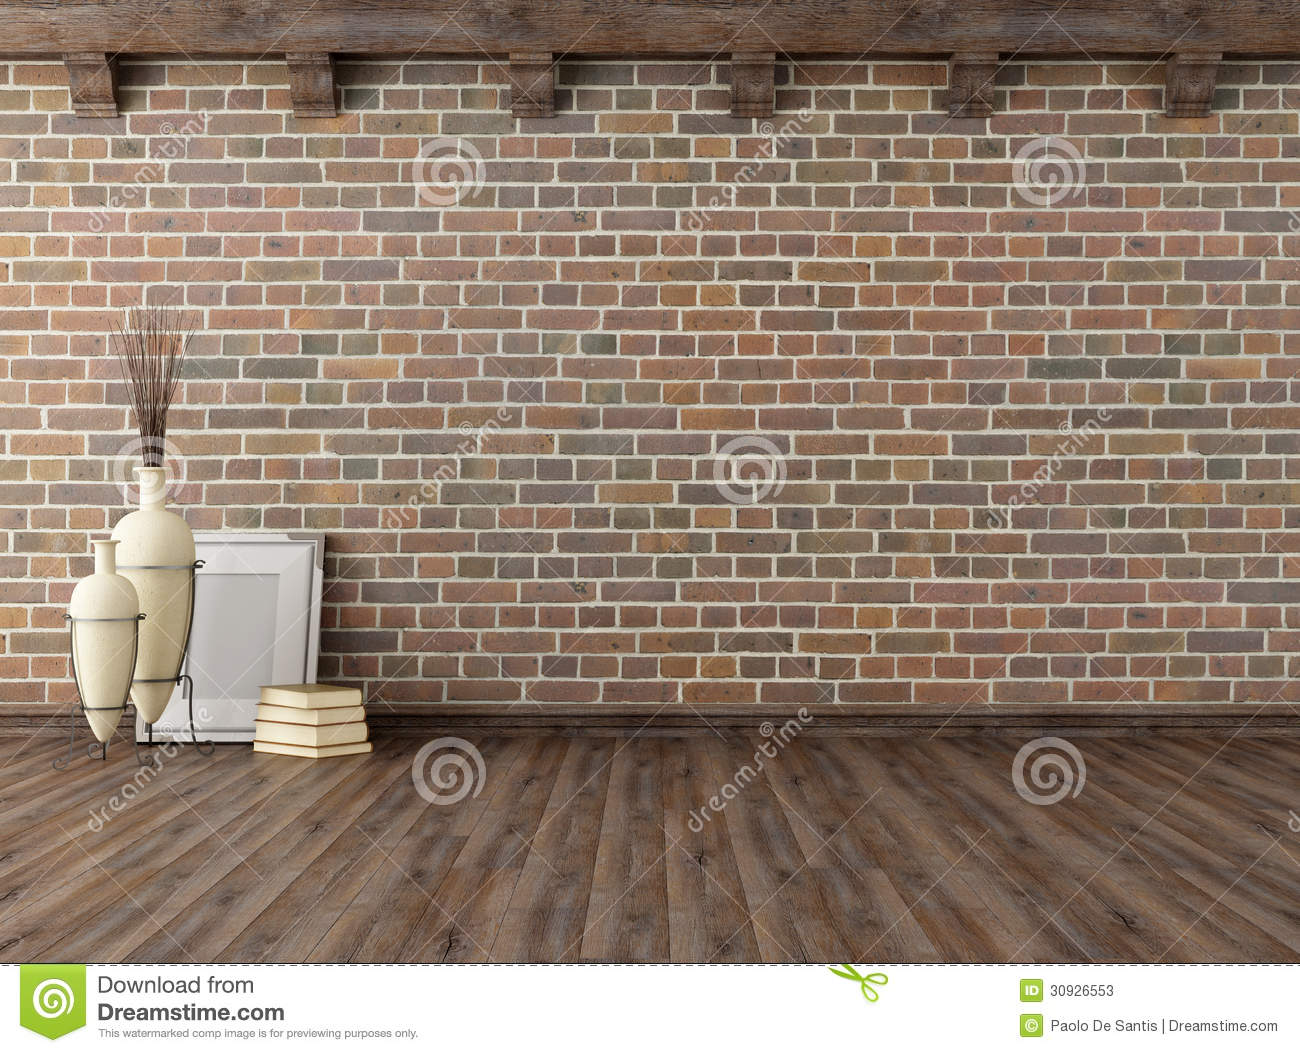 inspiring installing brick homes aka photo wall warehouse indoor effect dma interior